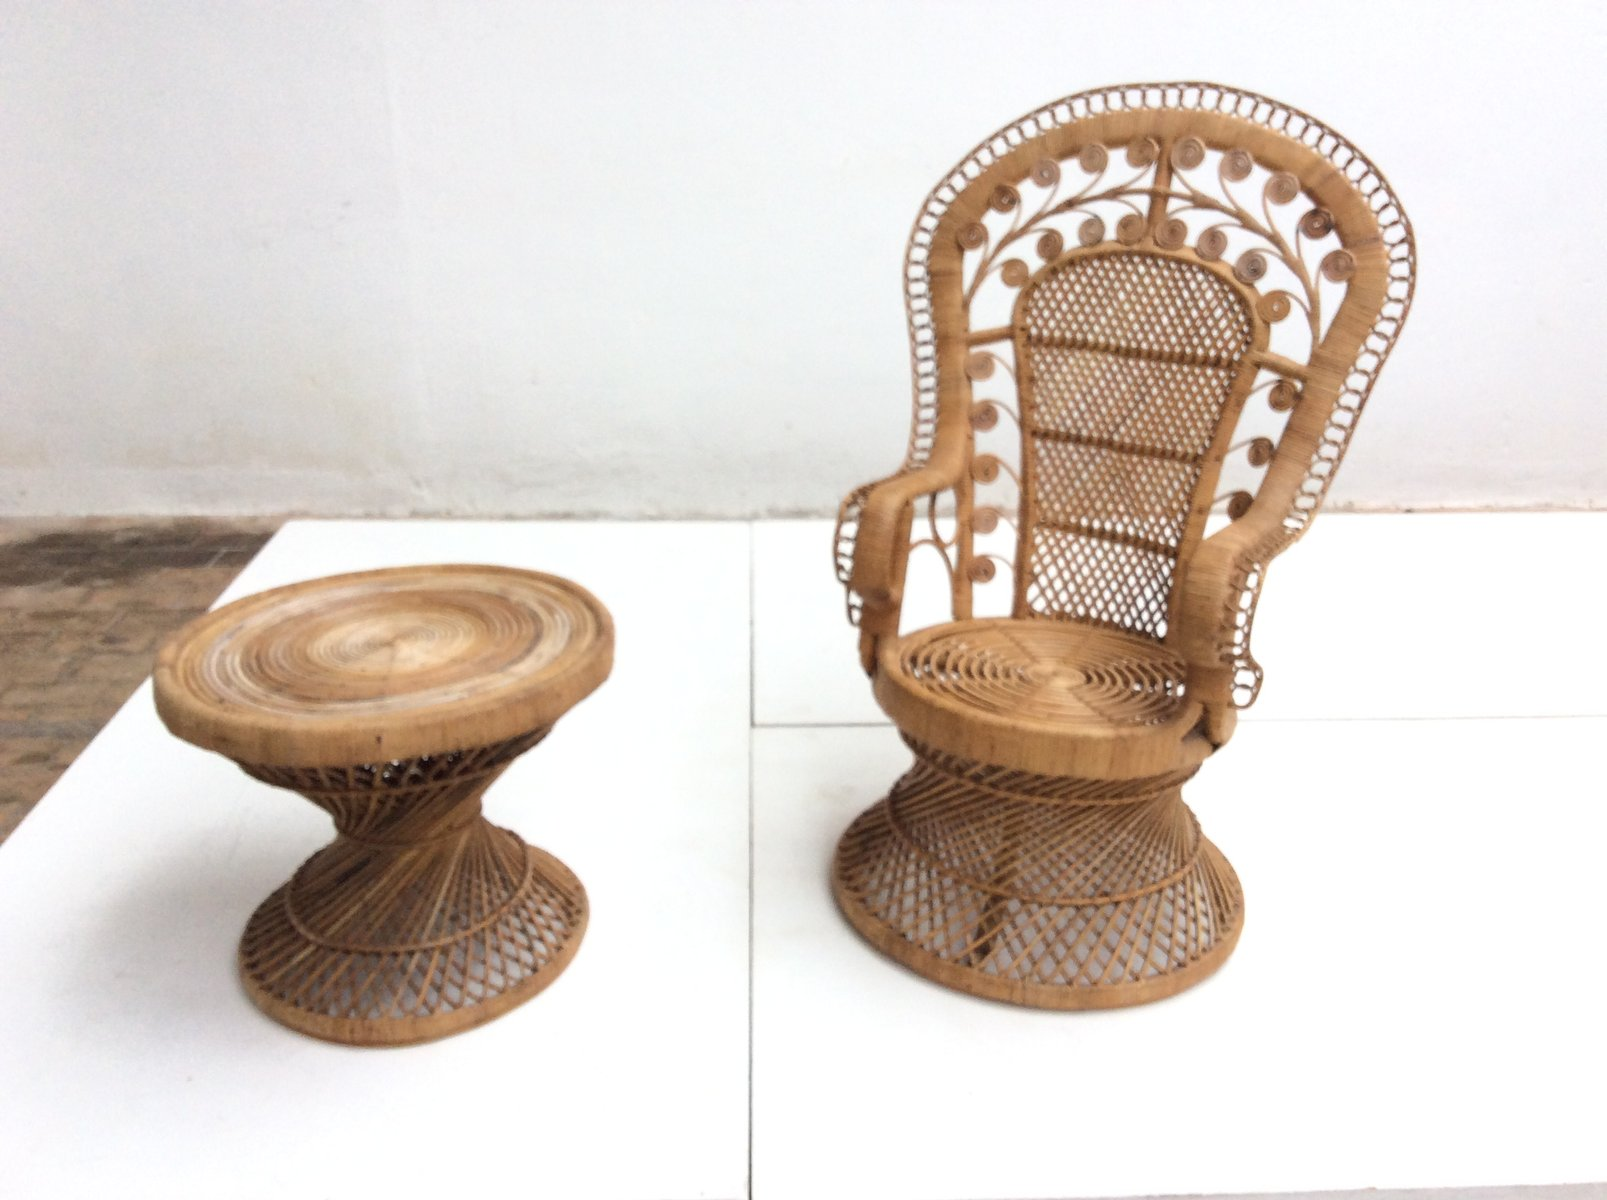 Vintage Indonesian Rattan Peacock Chair and Table 1970s for sale at